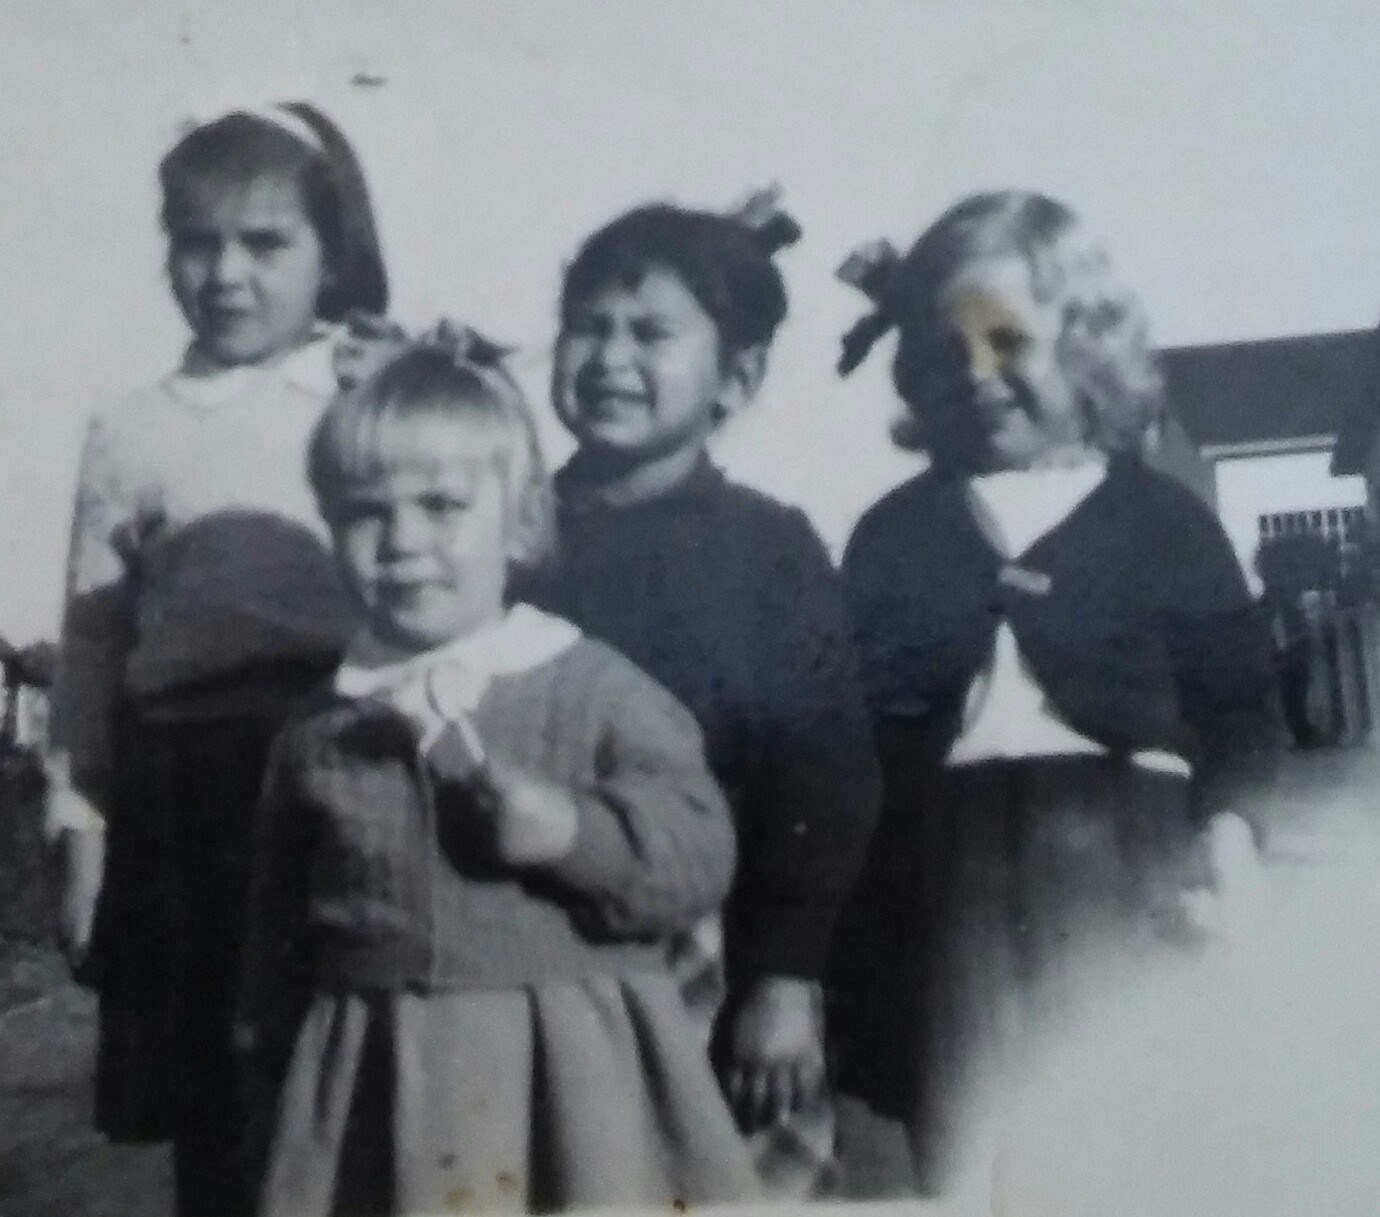 Pauline with Linda and Edna. 1955?